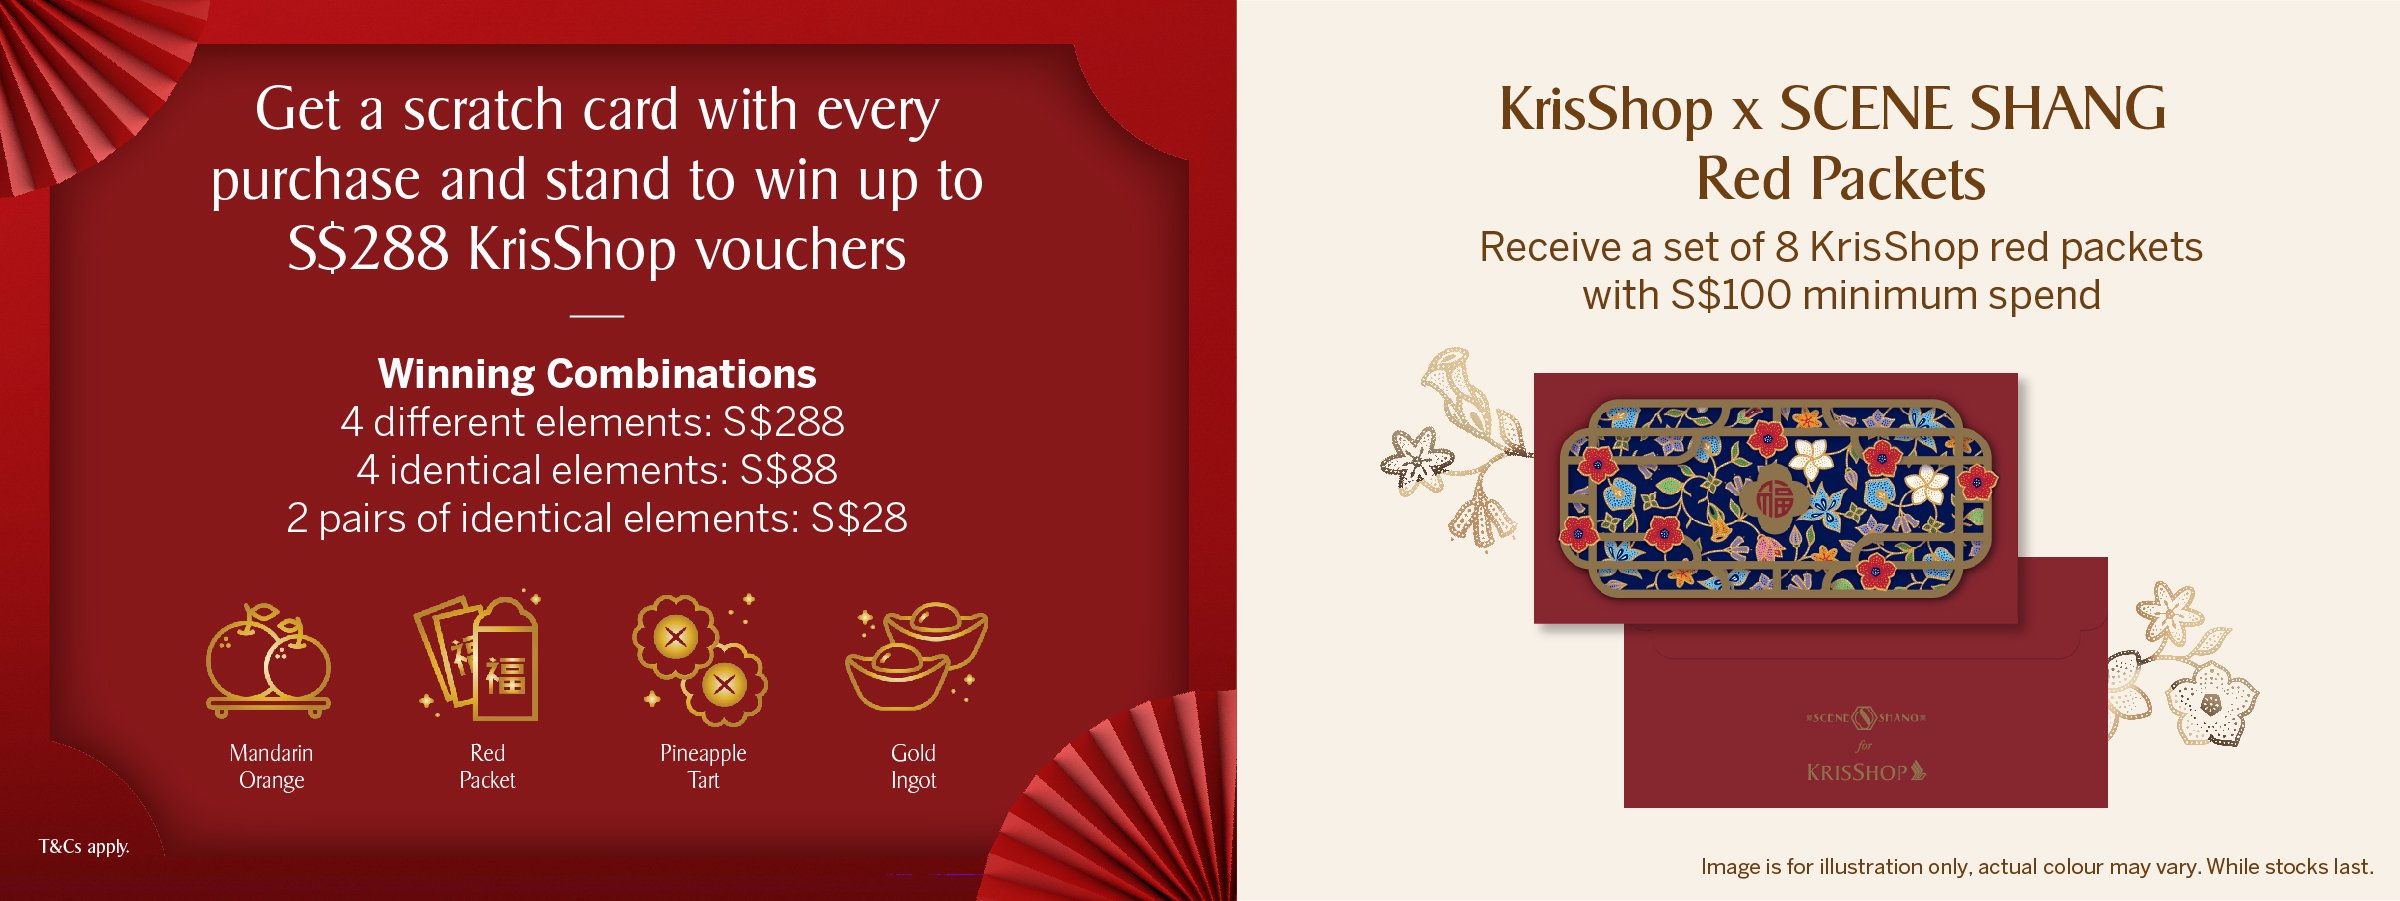 KrisShop CNY Scratch card and Red Packets